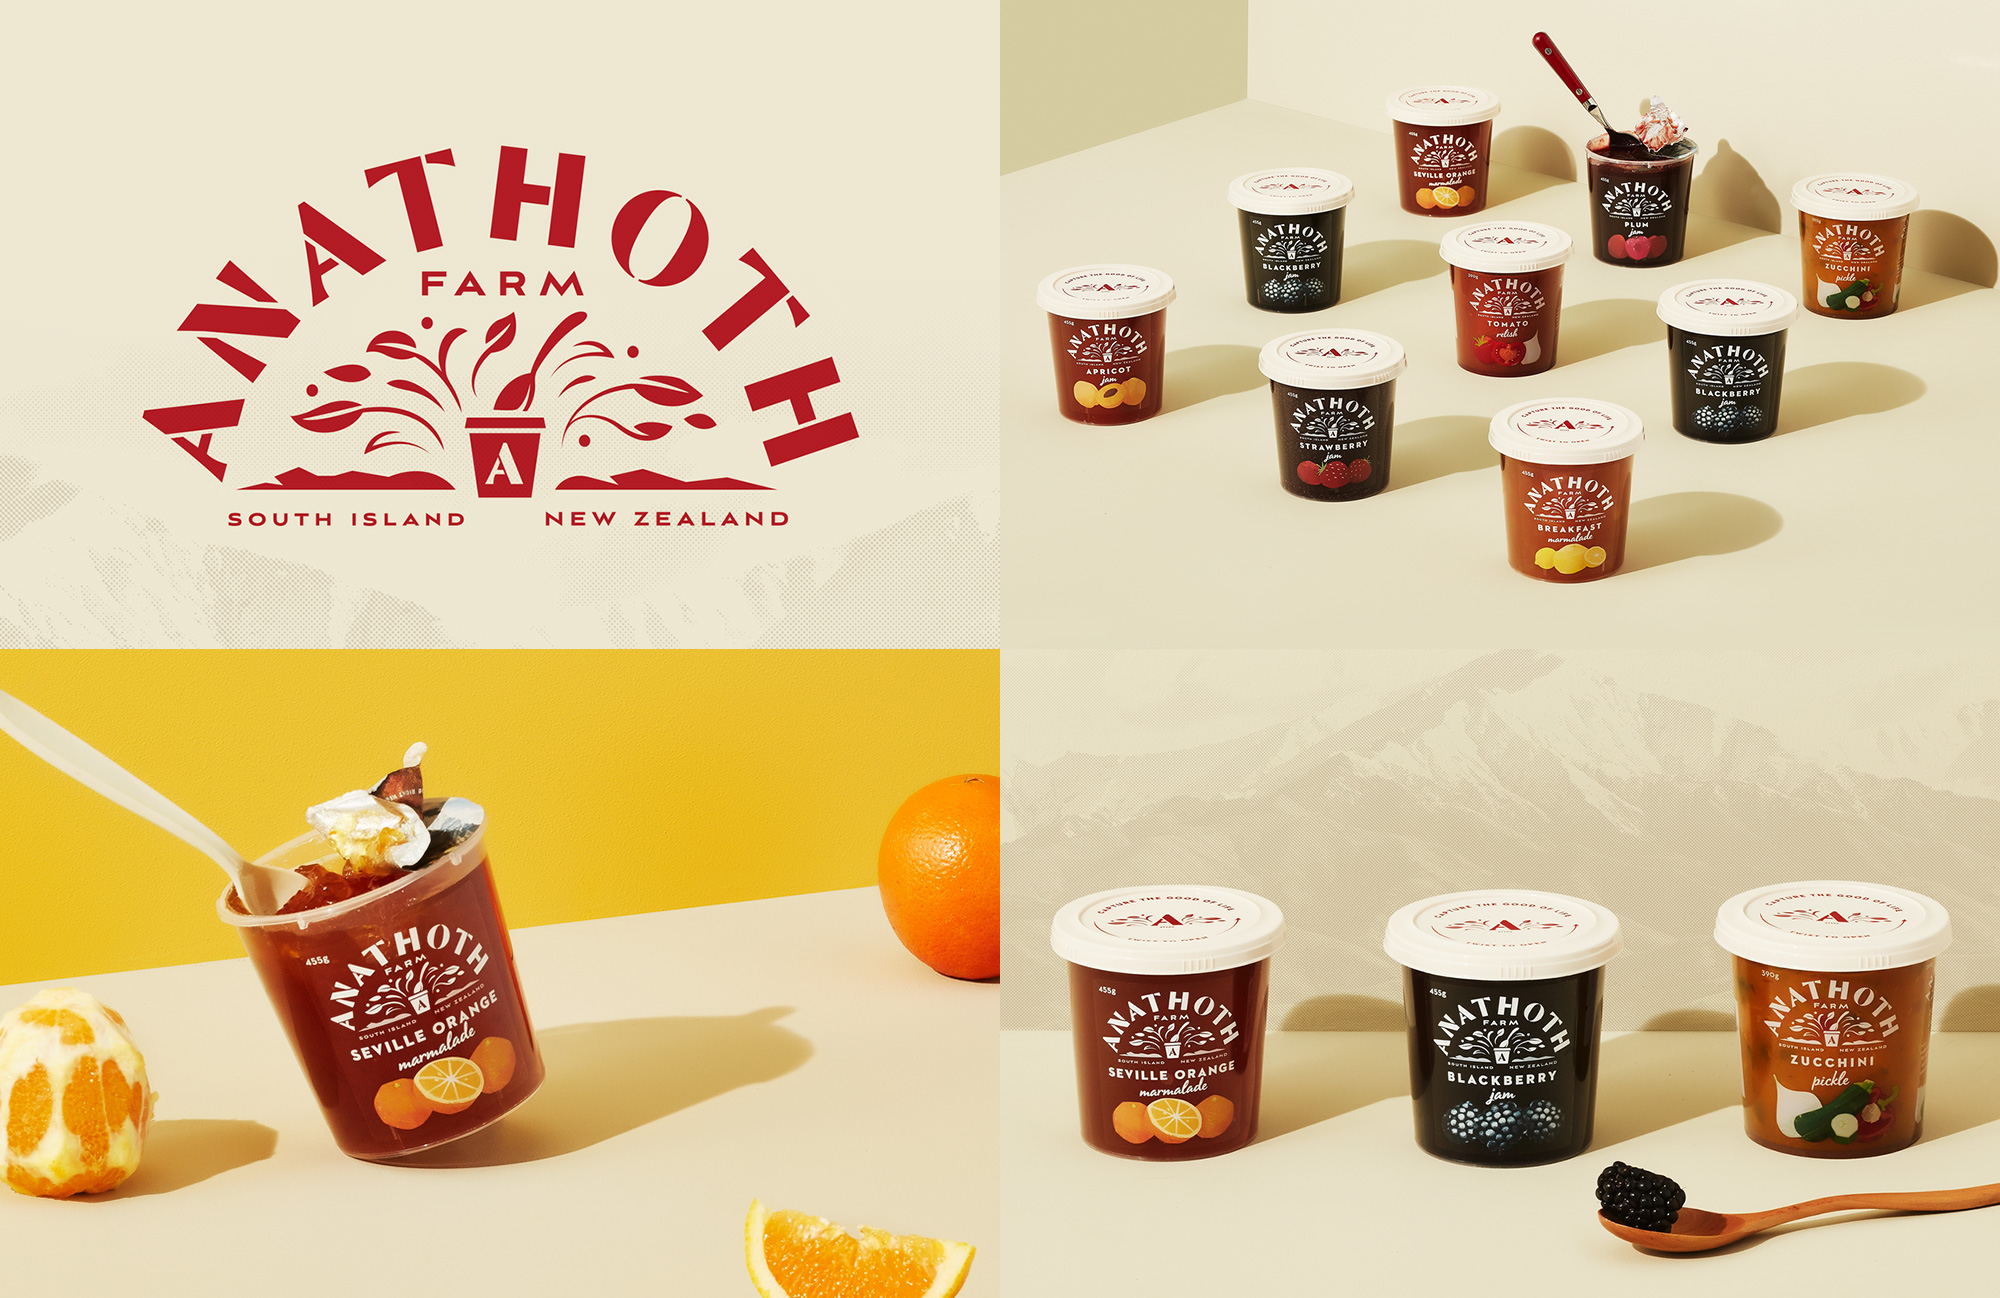 Anathoth Farm by Unified Brands